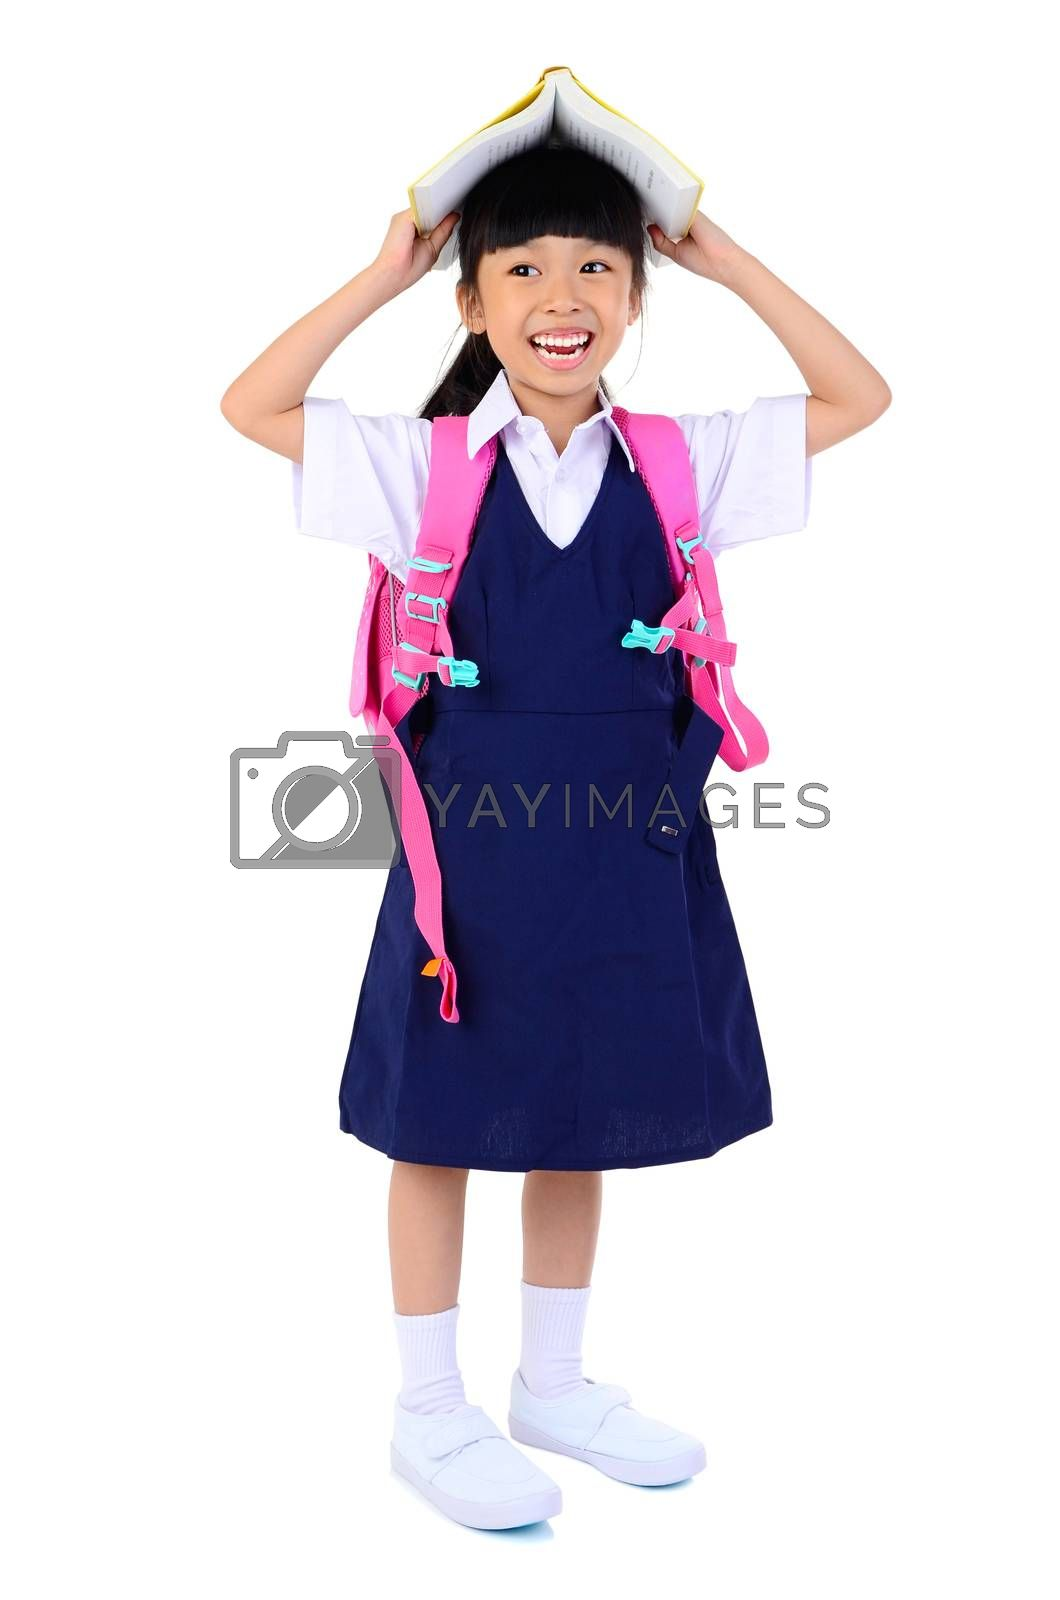 Portrait of Asian child in school uniform with school bag on and holding a book white background isolated.